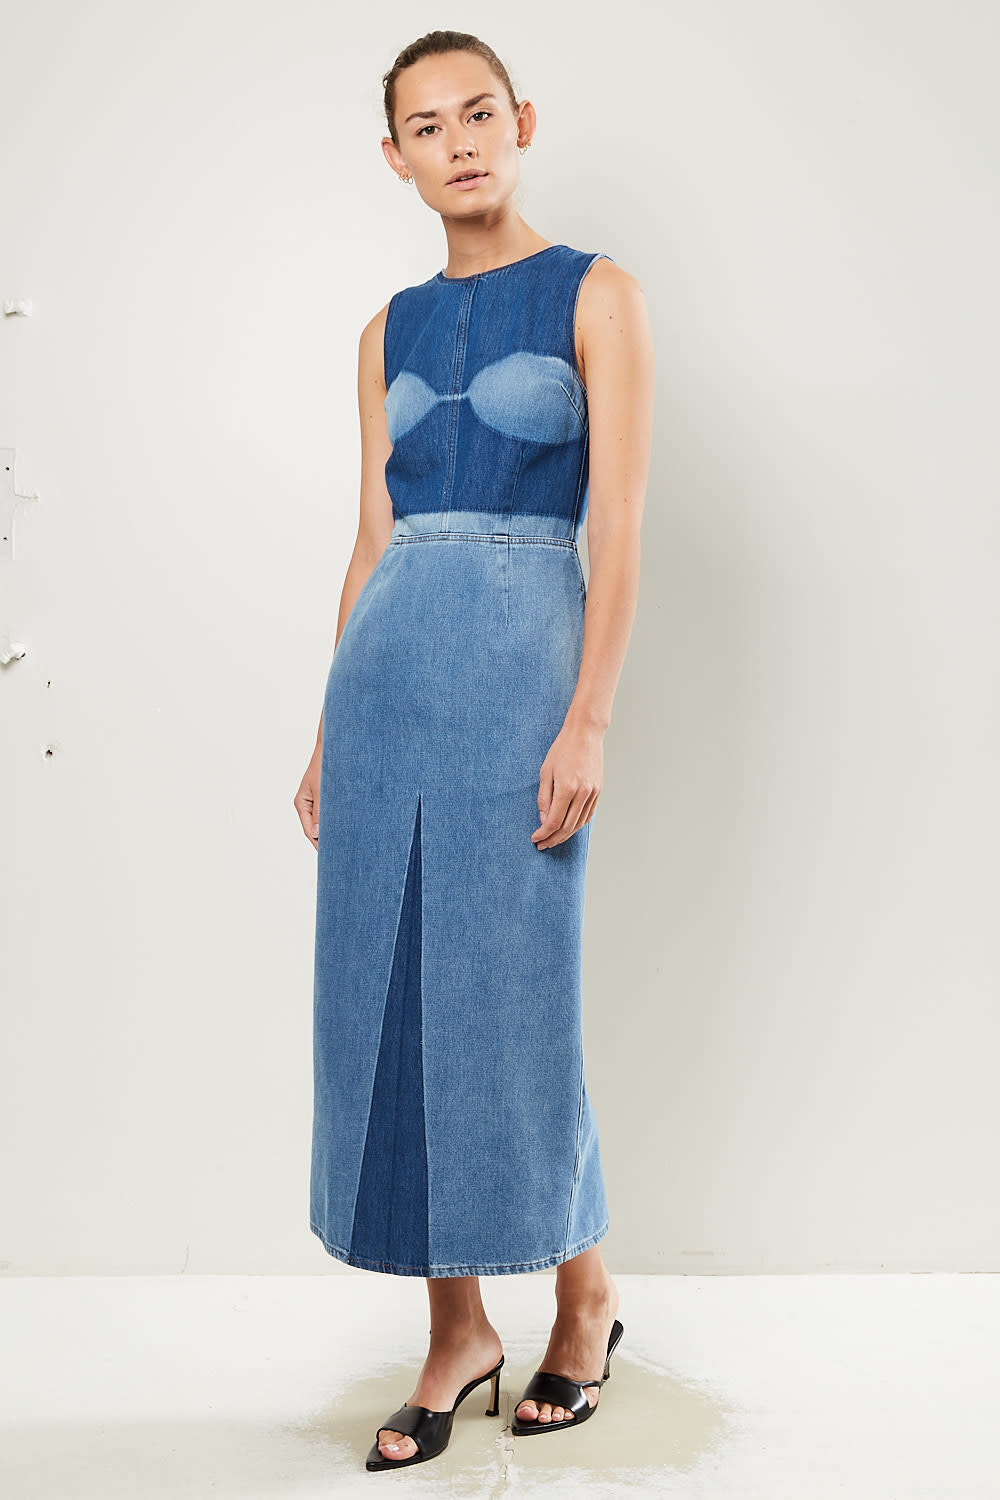 MM6 - Washed jeans dress MM6